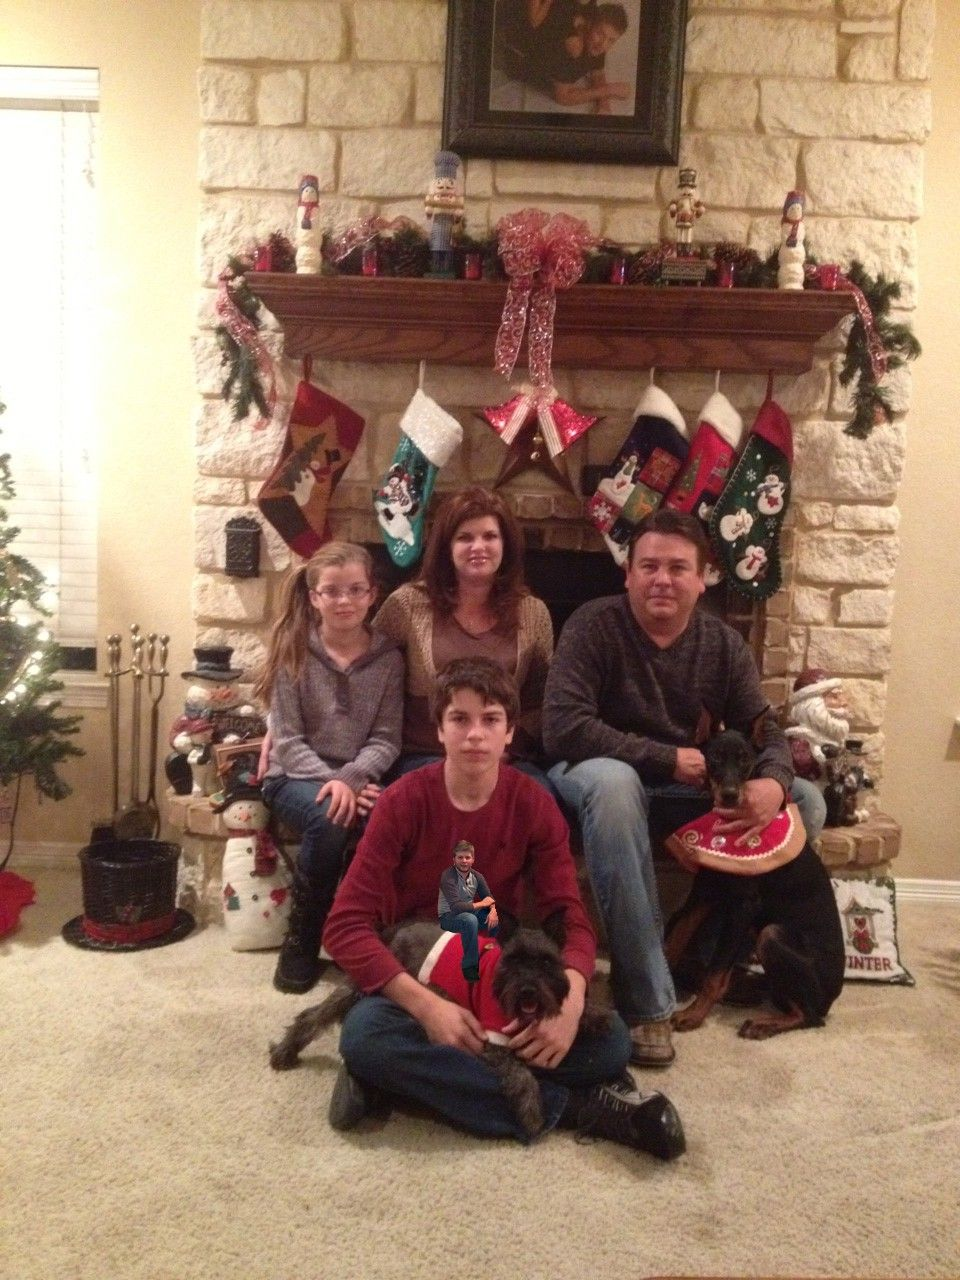 Family Christmas Photos The Most Awesome Images On The Internet Family Christmas Photos